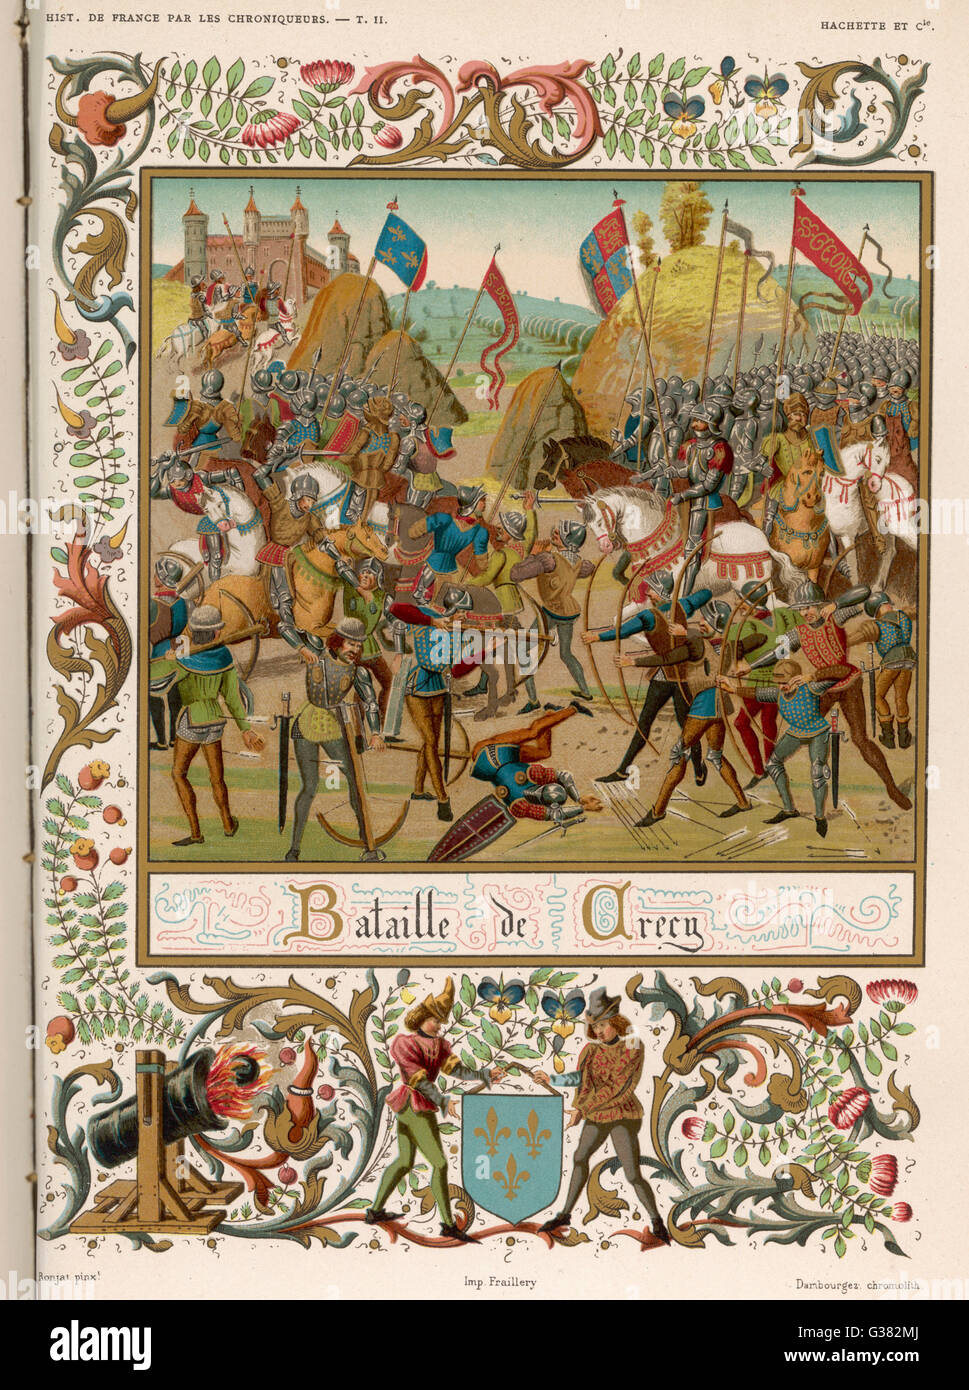 At CRECY, 9000 English  soldiers under Edward III  defeat 30,000 French under Philippe VI - a triumph of the  English - Stock Image